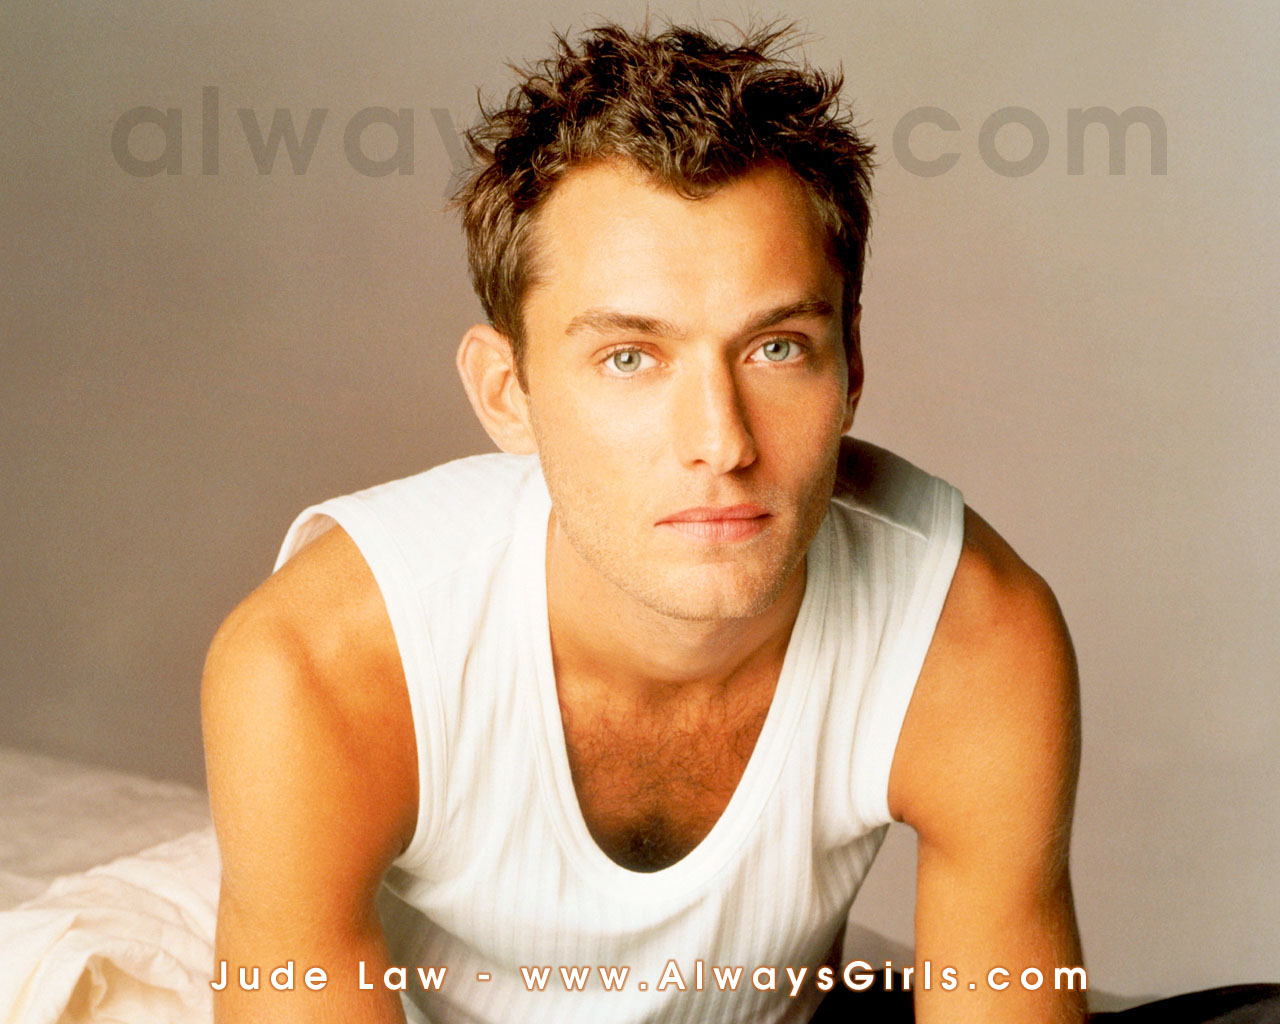 Jude Law - Photo Colection